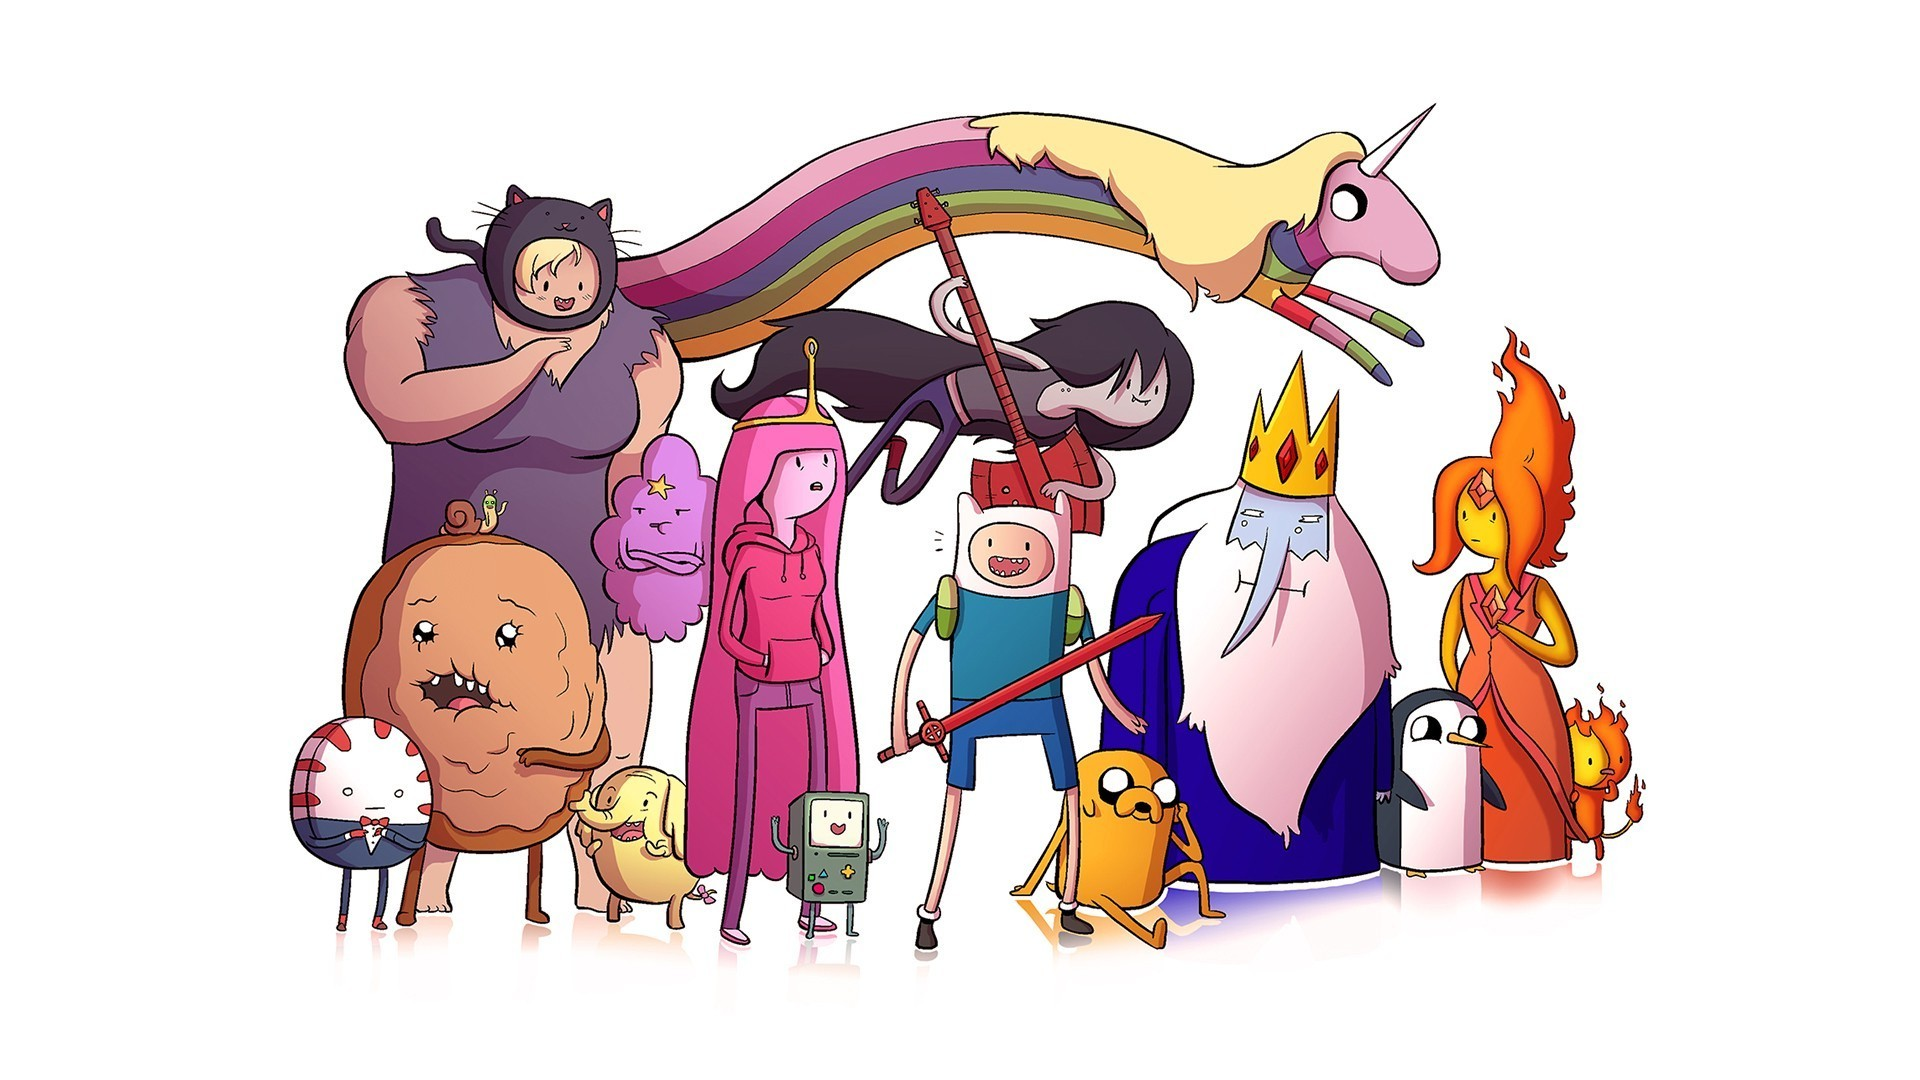 1920x1080  adventure time colorful white background simple background gunter  flame princess ice king jake the dog finn the human lady rainicorn bmo  wallpaper ...